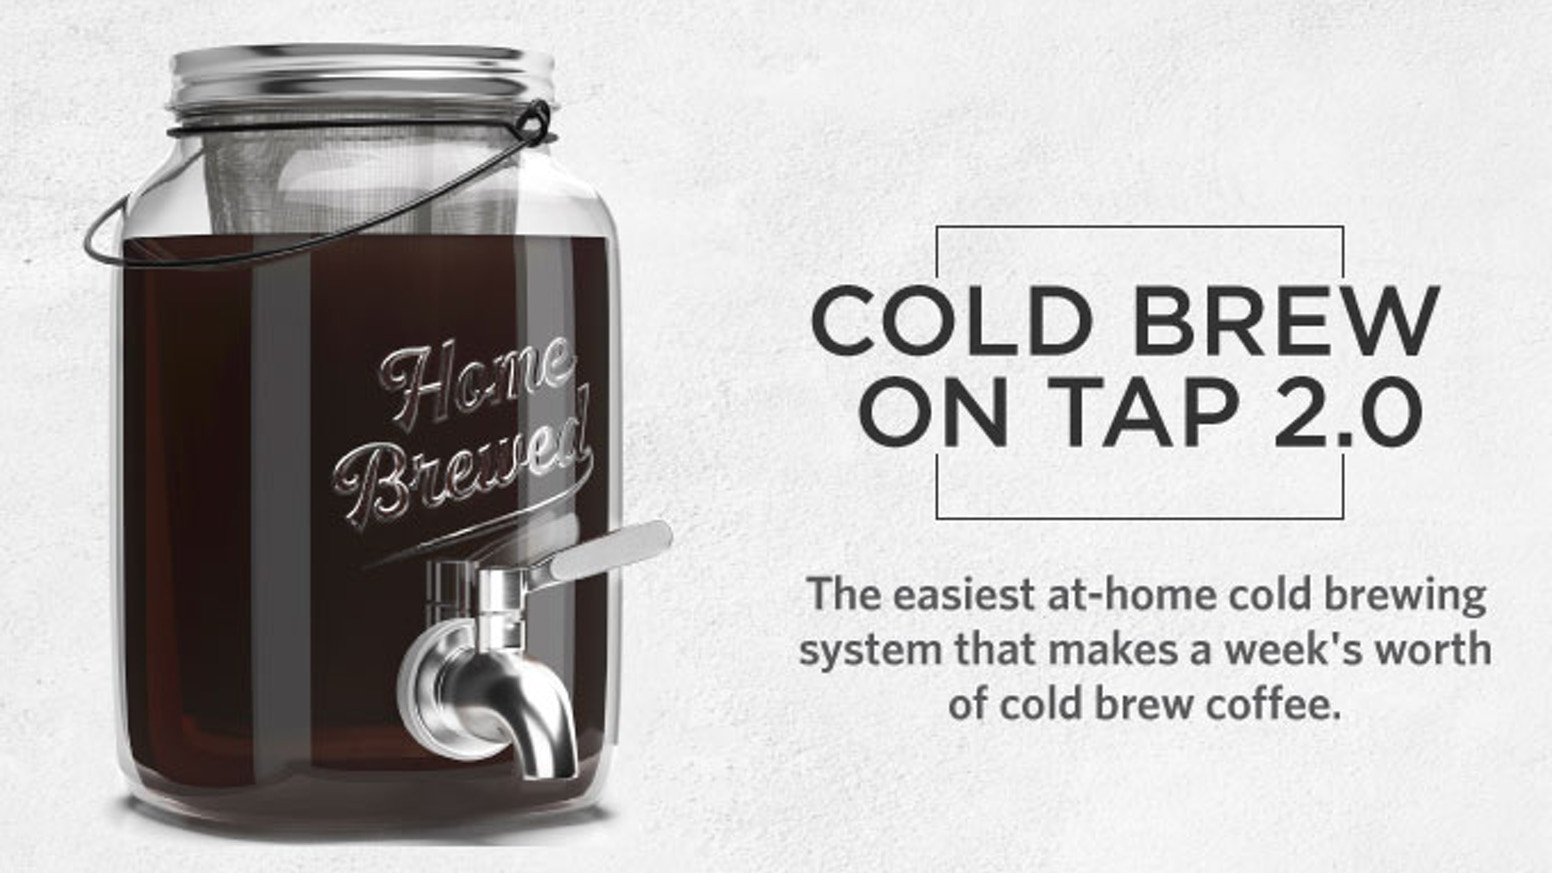 The perfect and mess-free way to easily brew, store and serve up a week's worth of delicious homemade cold brew coffee.